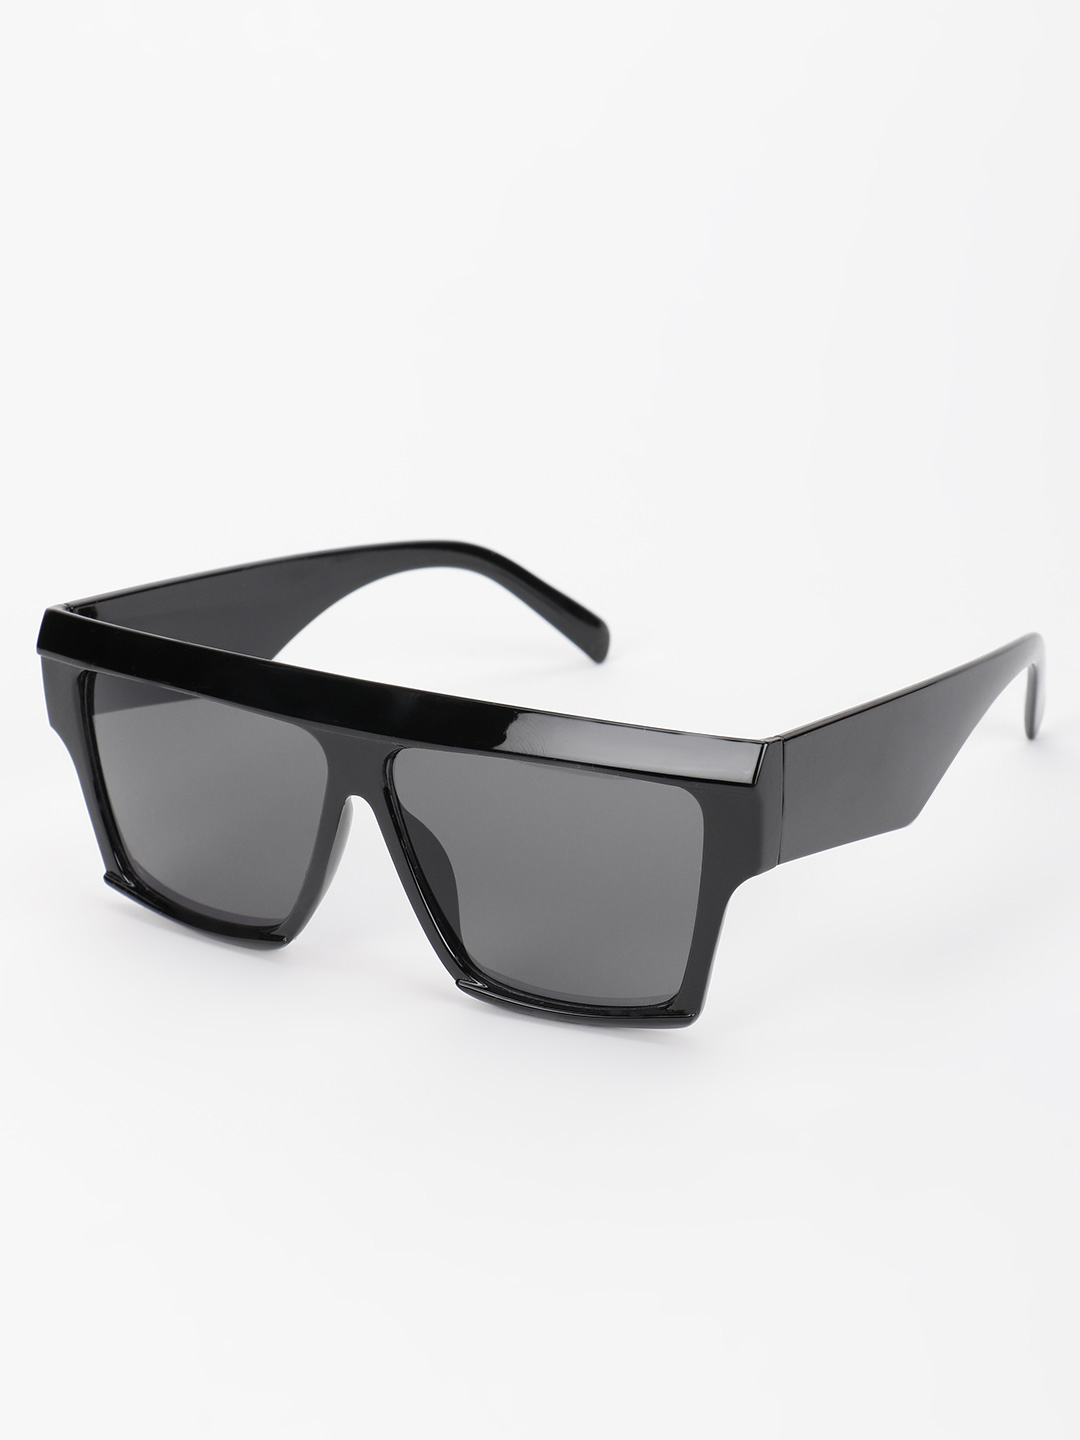 Pataaka Black Tinted Lens Square Sunglasses 1